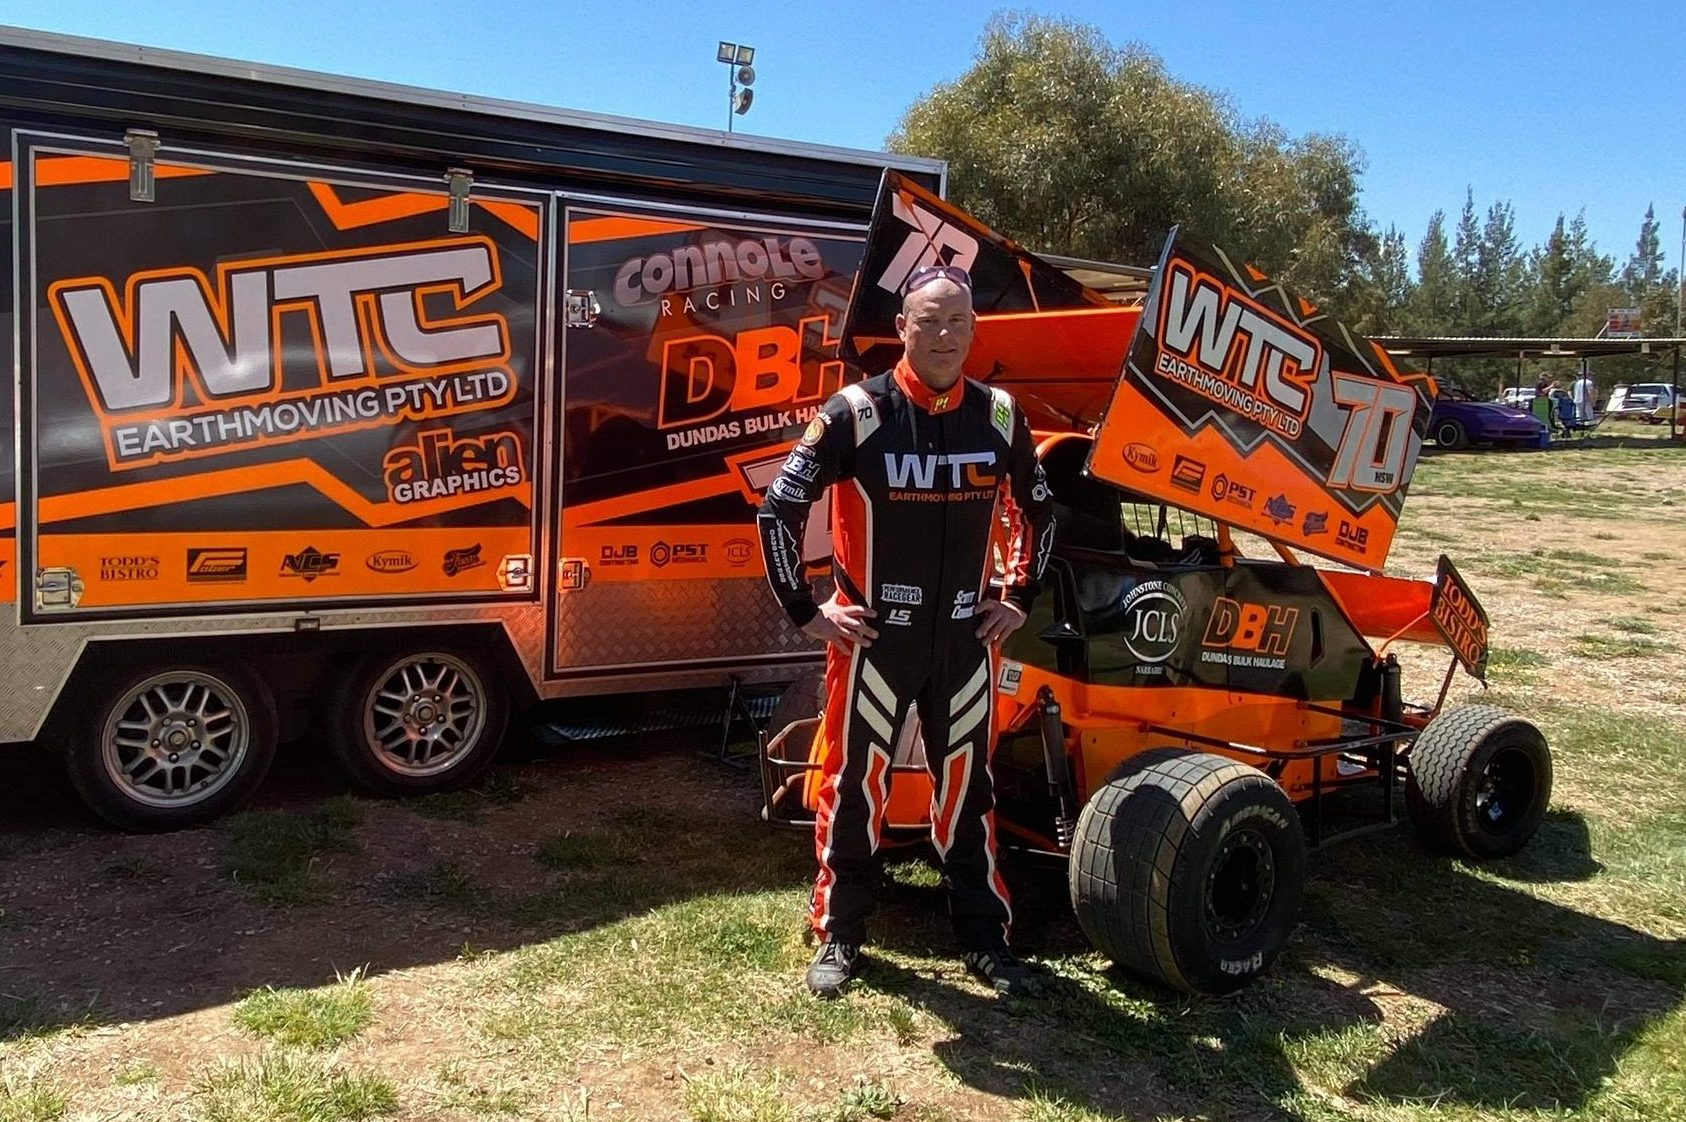 Scott Connole places second in Formula 500 NSW series